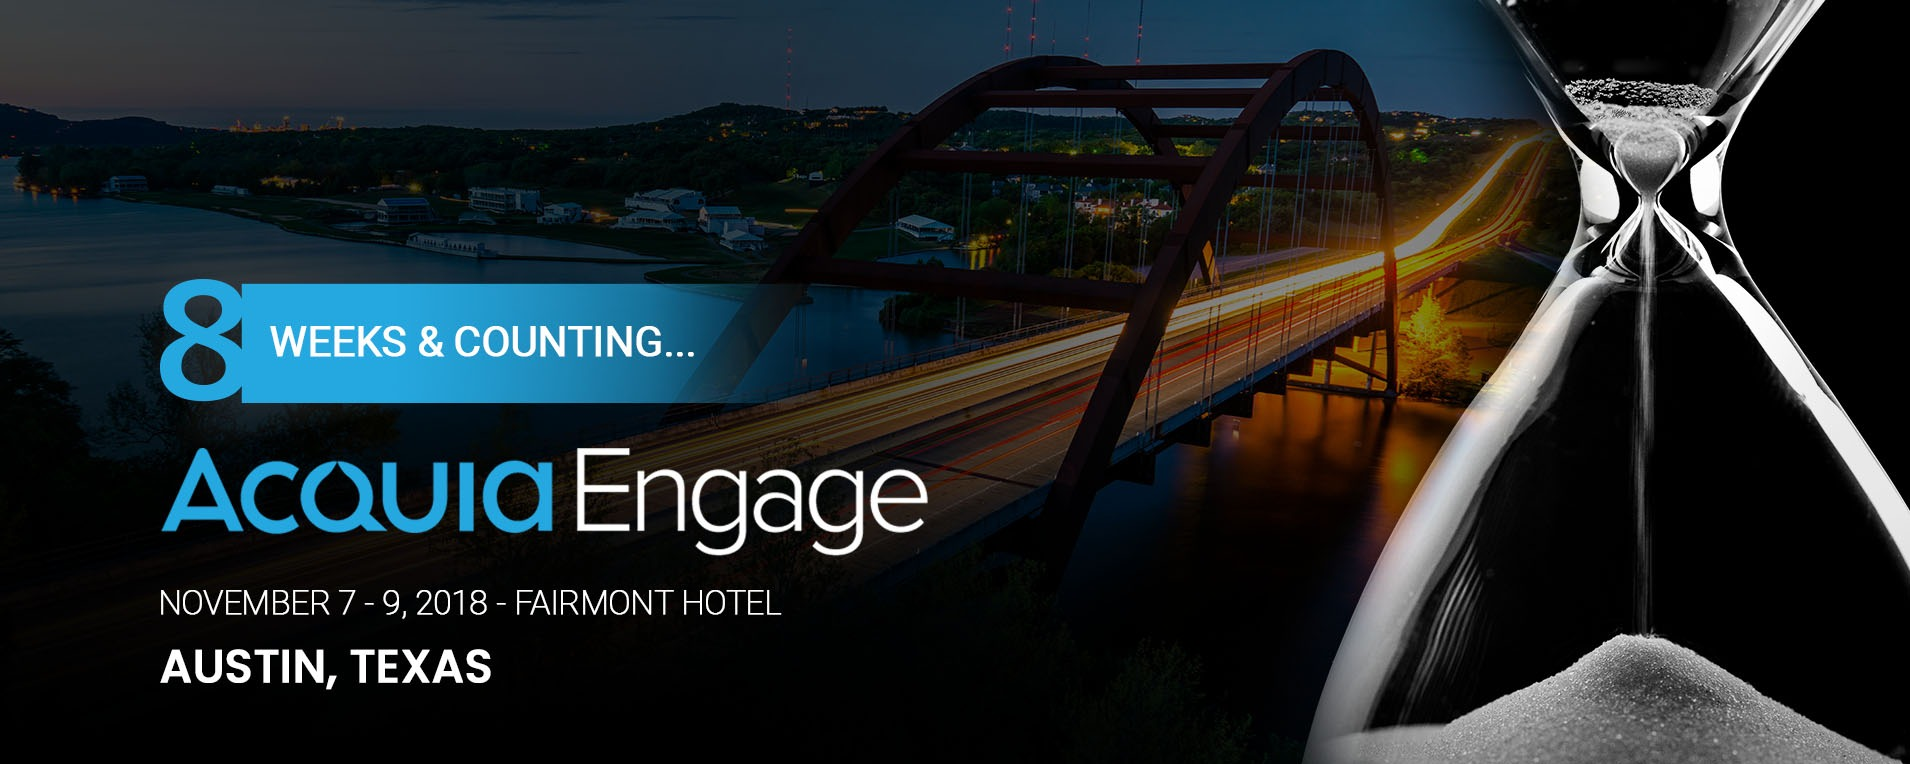 Countdown to Acquia Engage 2018